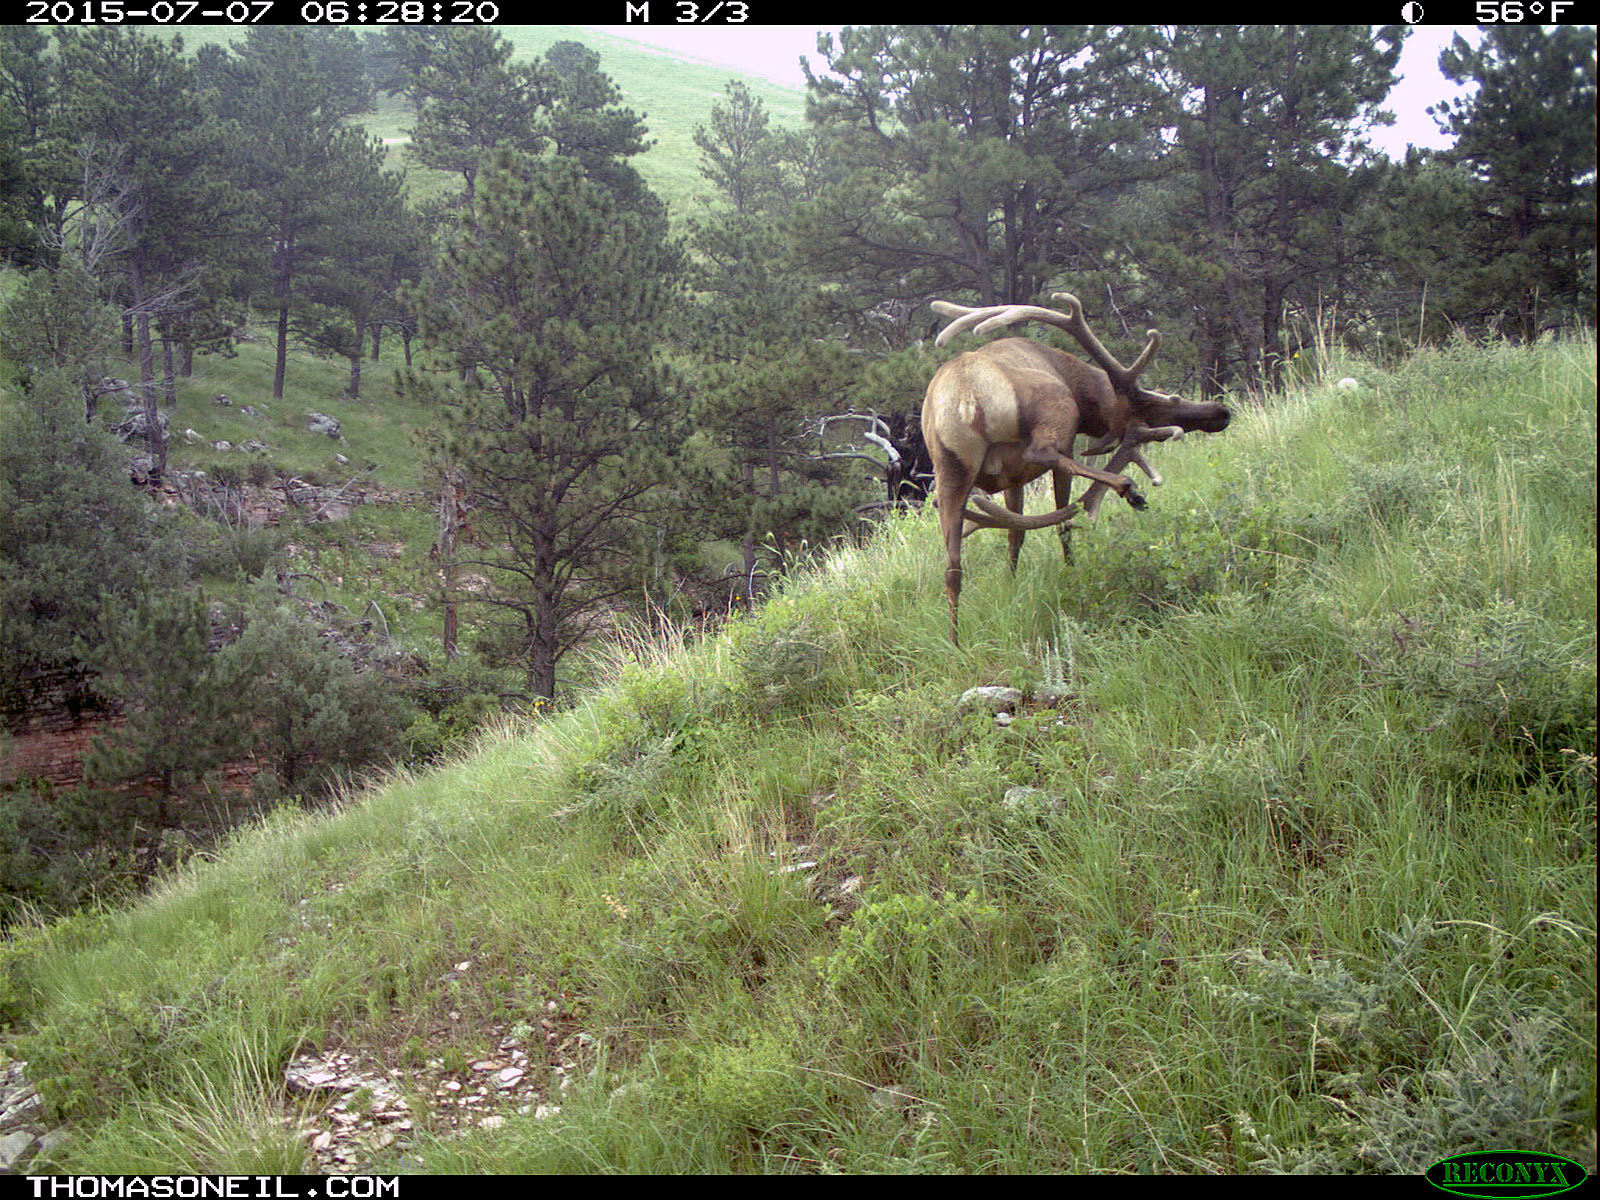 Elk scratching sequence on trailcam, 7 of 7, Wind Cave National Park, July 2015,